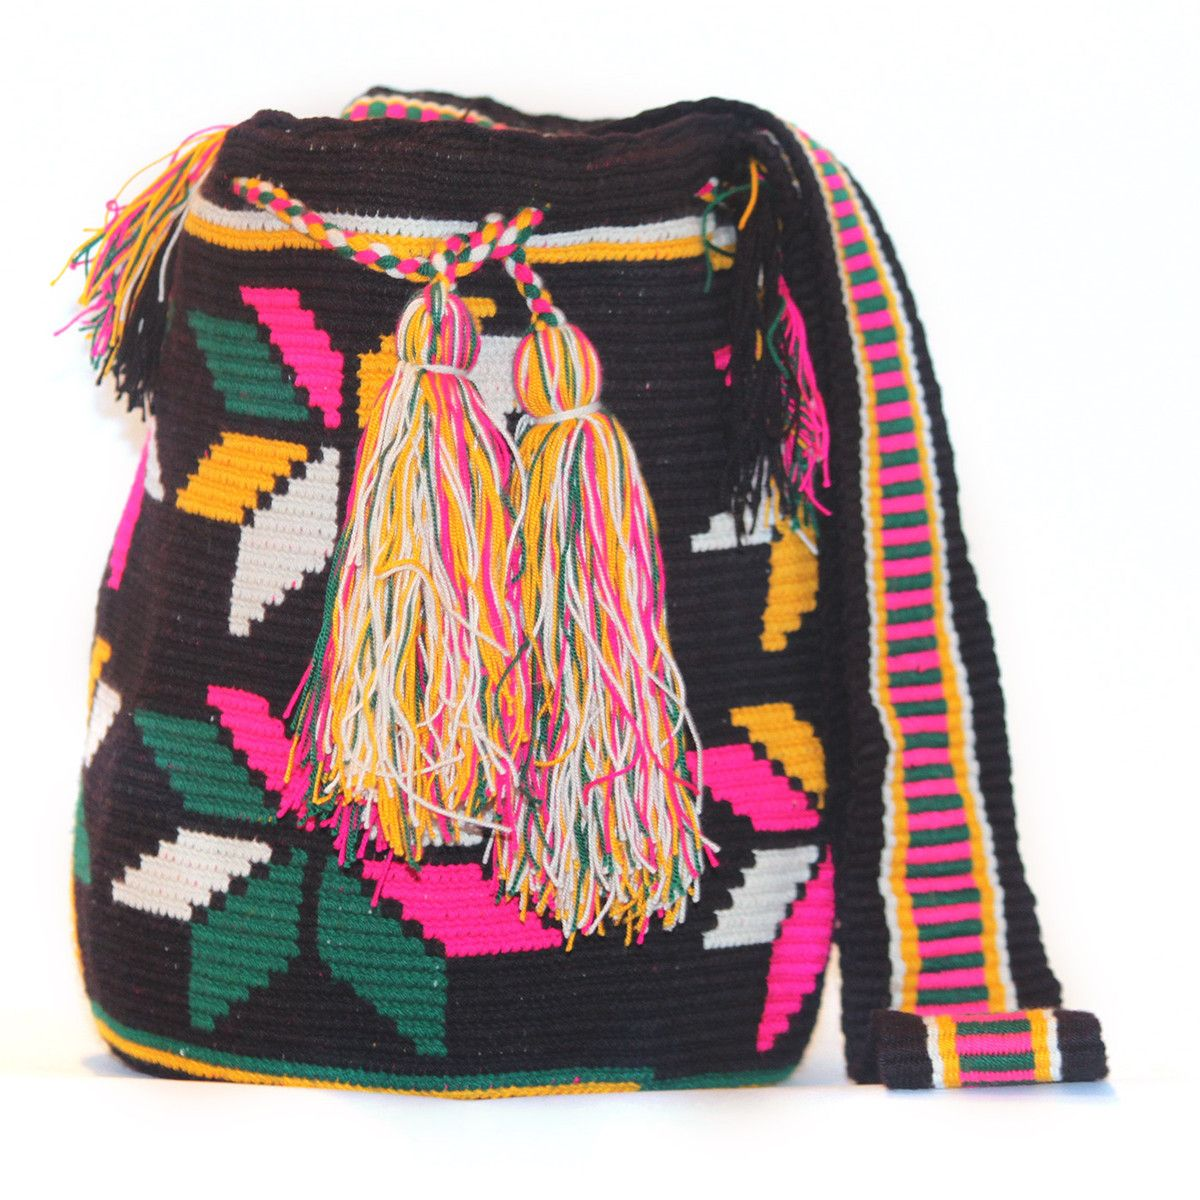 Crochet Mochila Bag #CraftInspiration